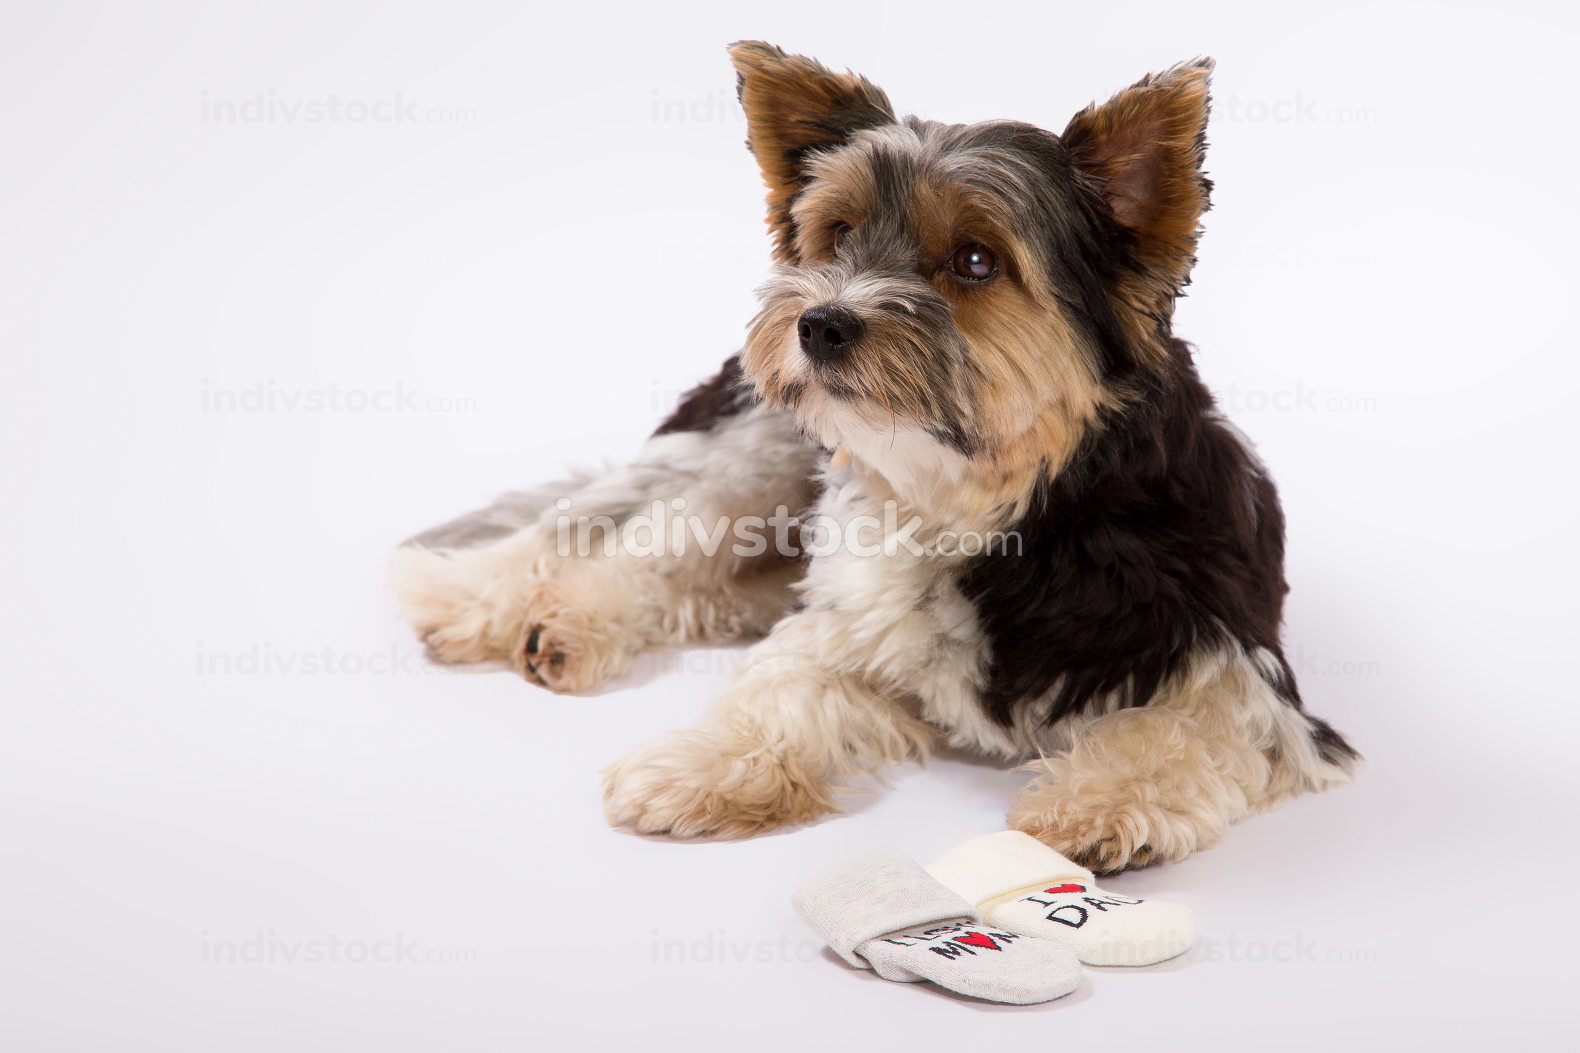 A Studio shot of small dog on a white background